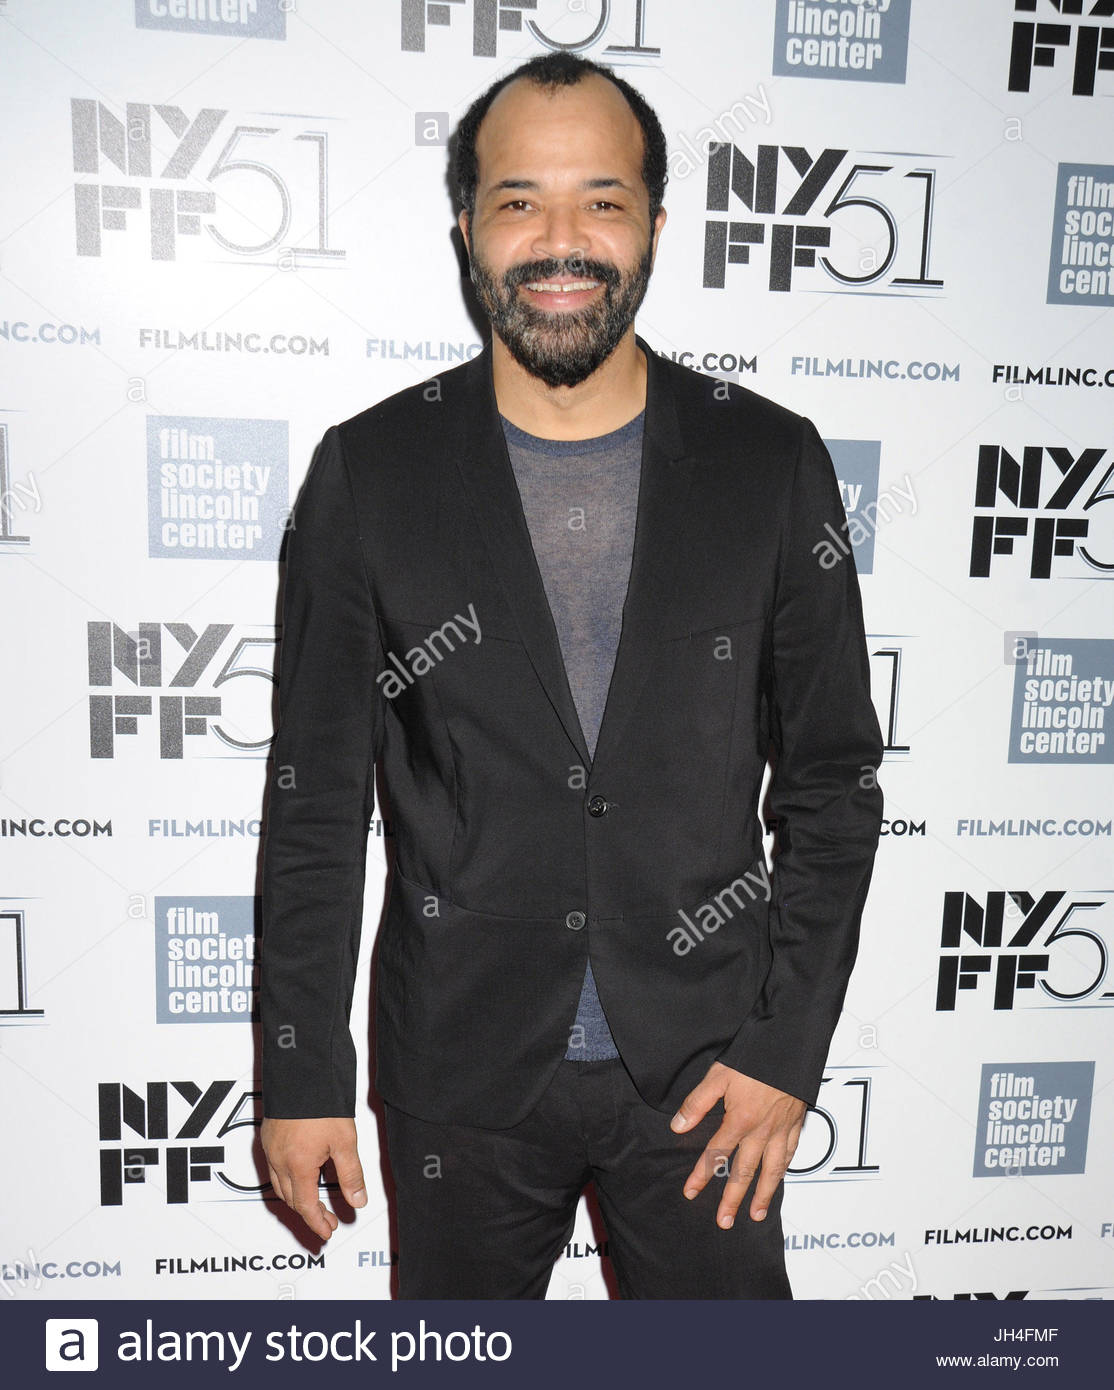 Jeffrey wright the cast arrive for the new york premiere of their the cast arrive for the new york premiere of their new film only lovers left alive at the 51st annual new york film festival held at alice tully hall at sciox Image collections